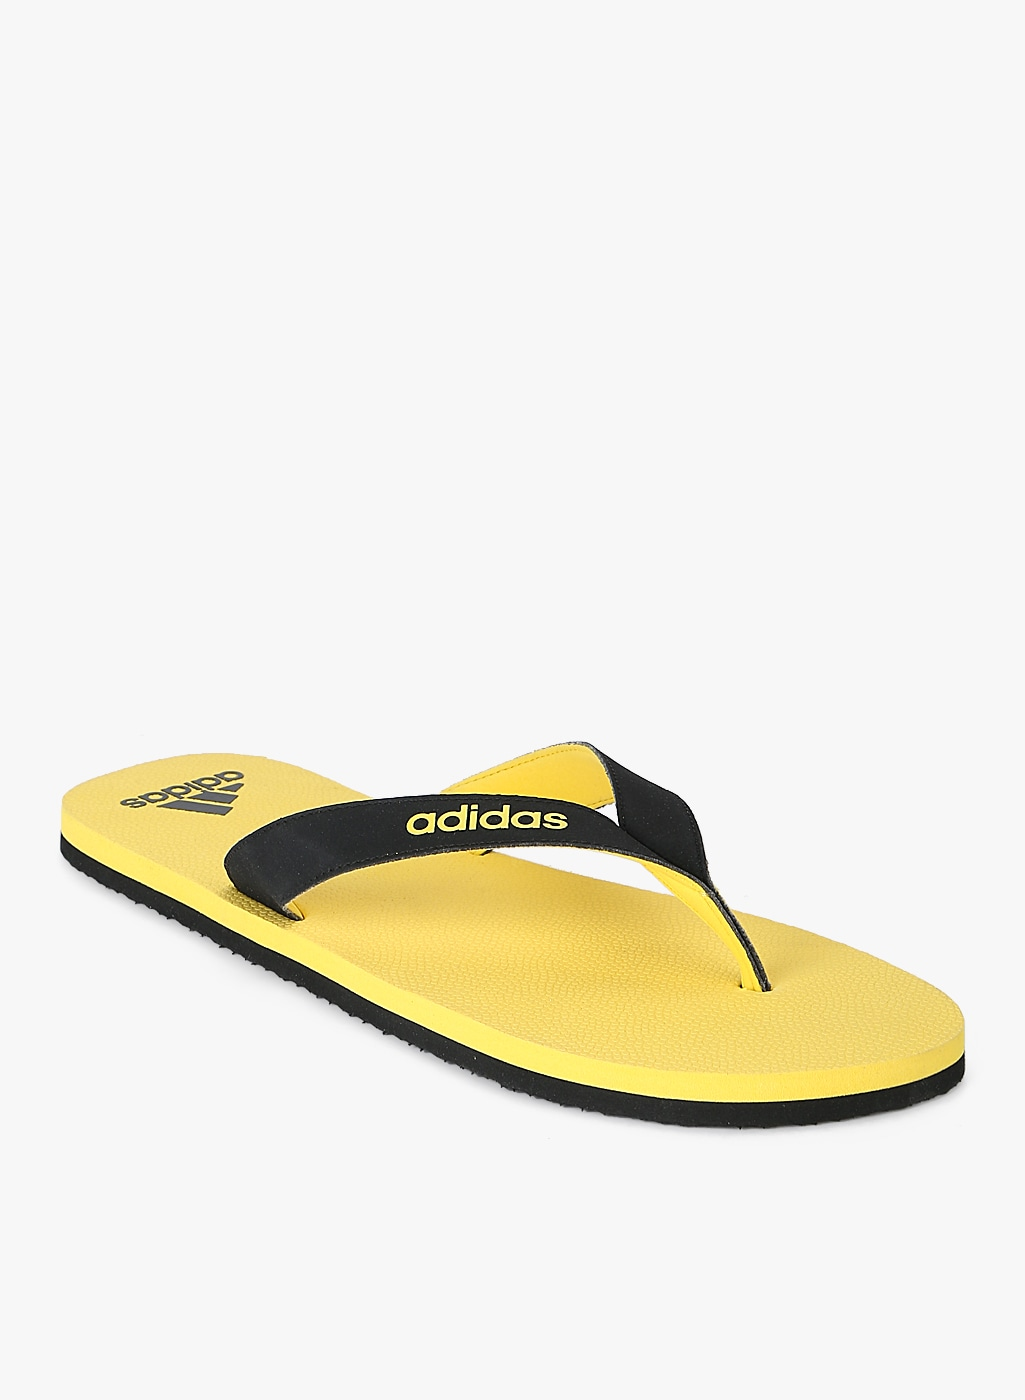 52df0bac316bf3 Yellow Footwear Adidas Flip Flops - Buy Yellow Footwear Adidas Flip Flops  online in India